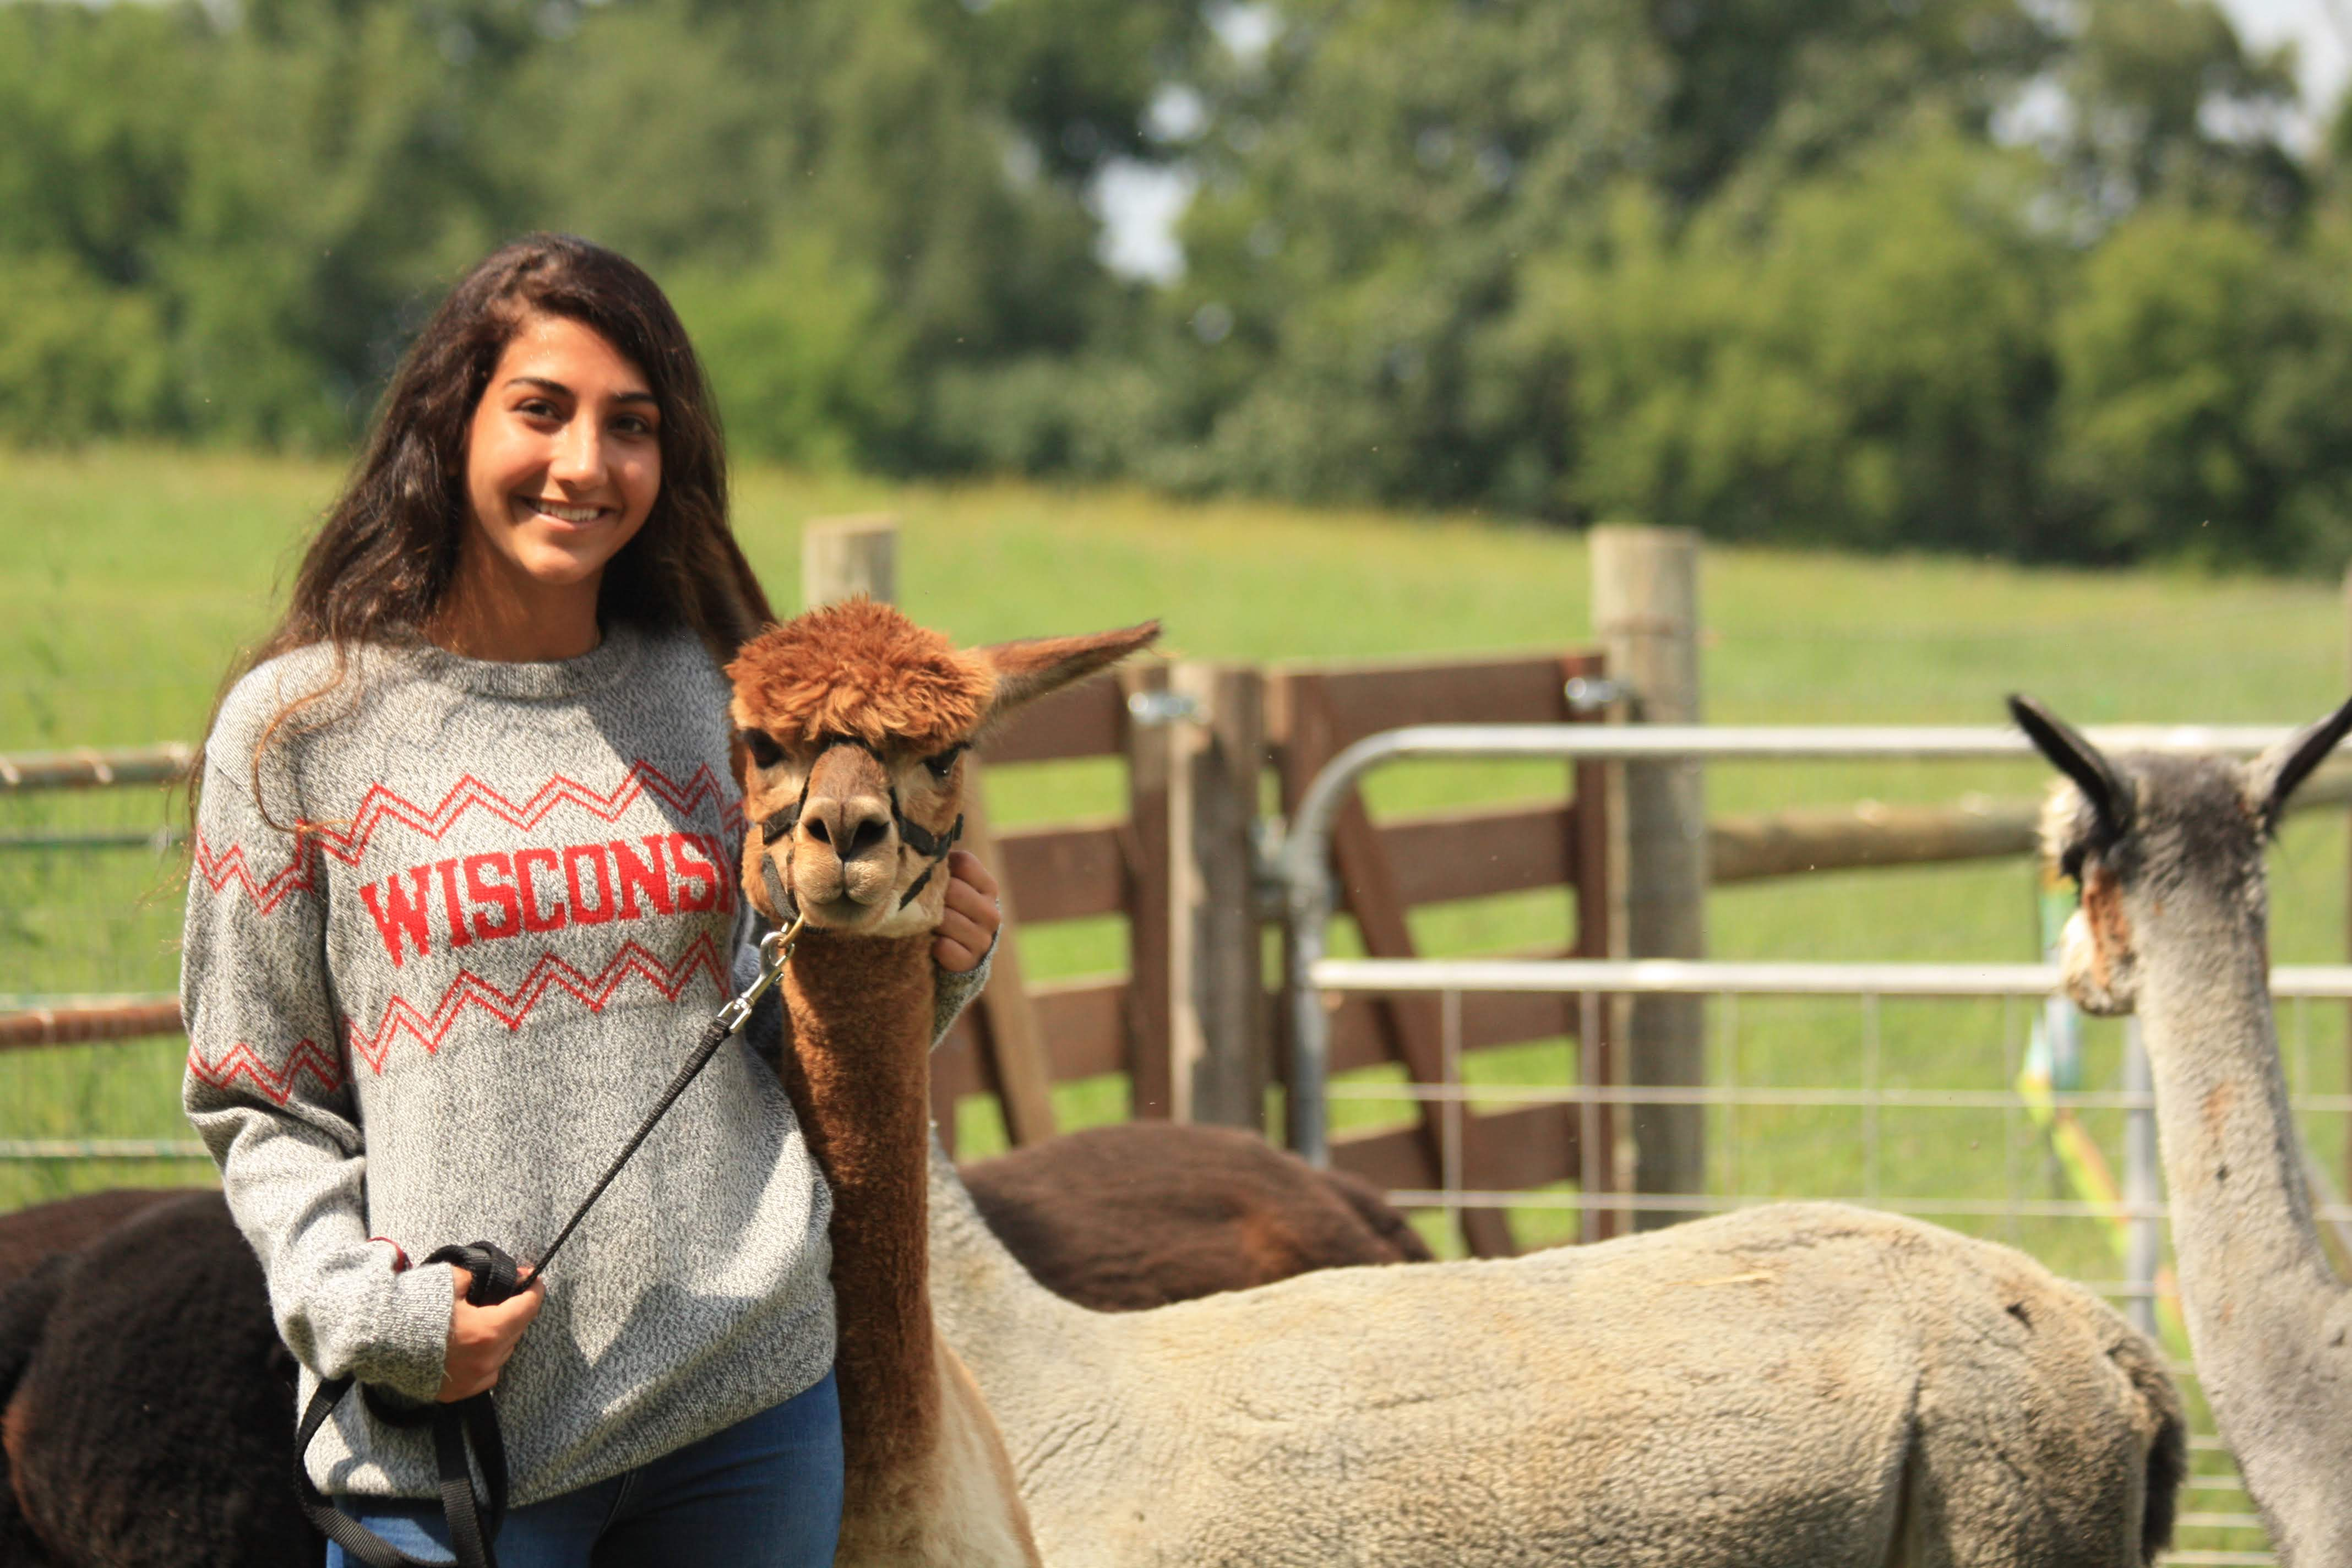 Girl in Salt and Paper Wisconsin Crew Neck with Alpaca